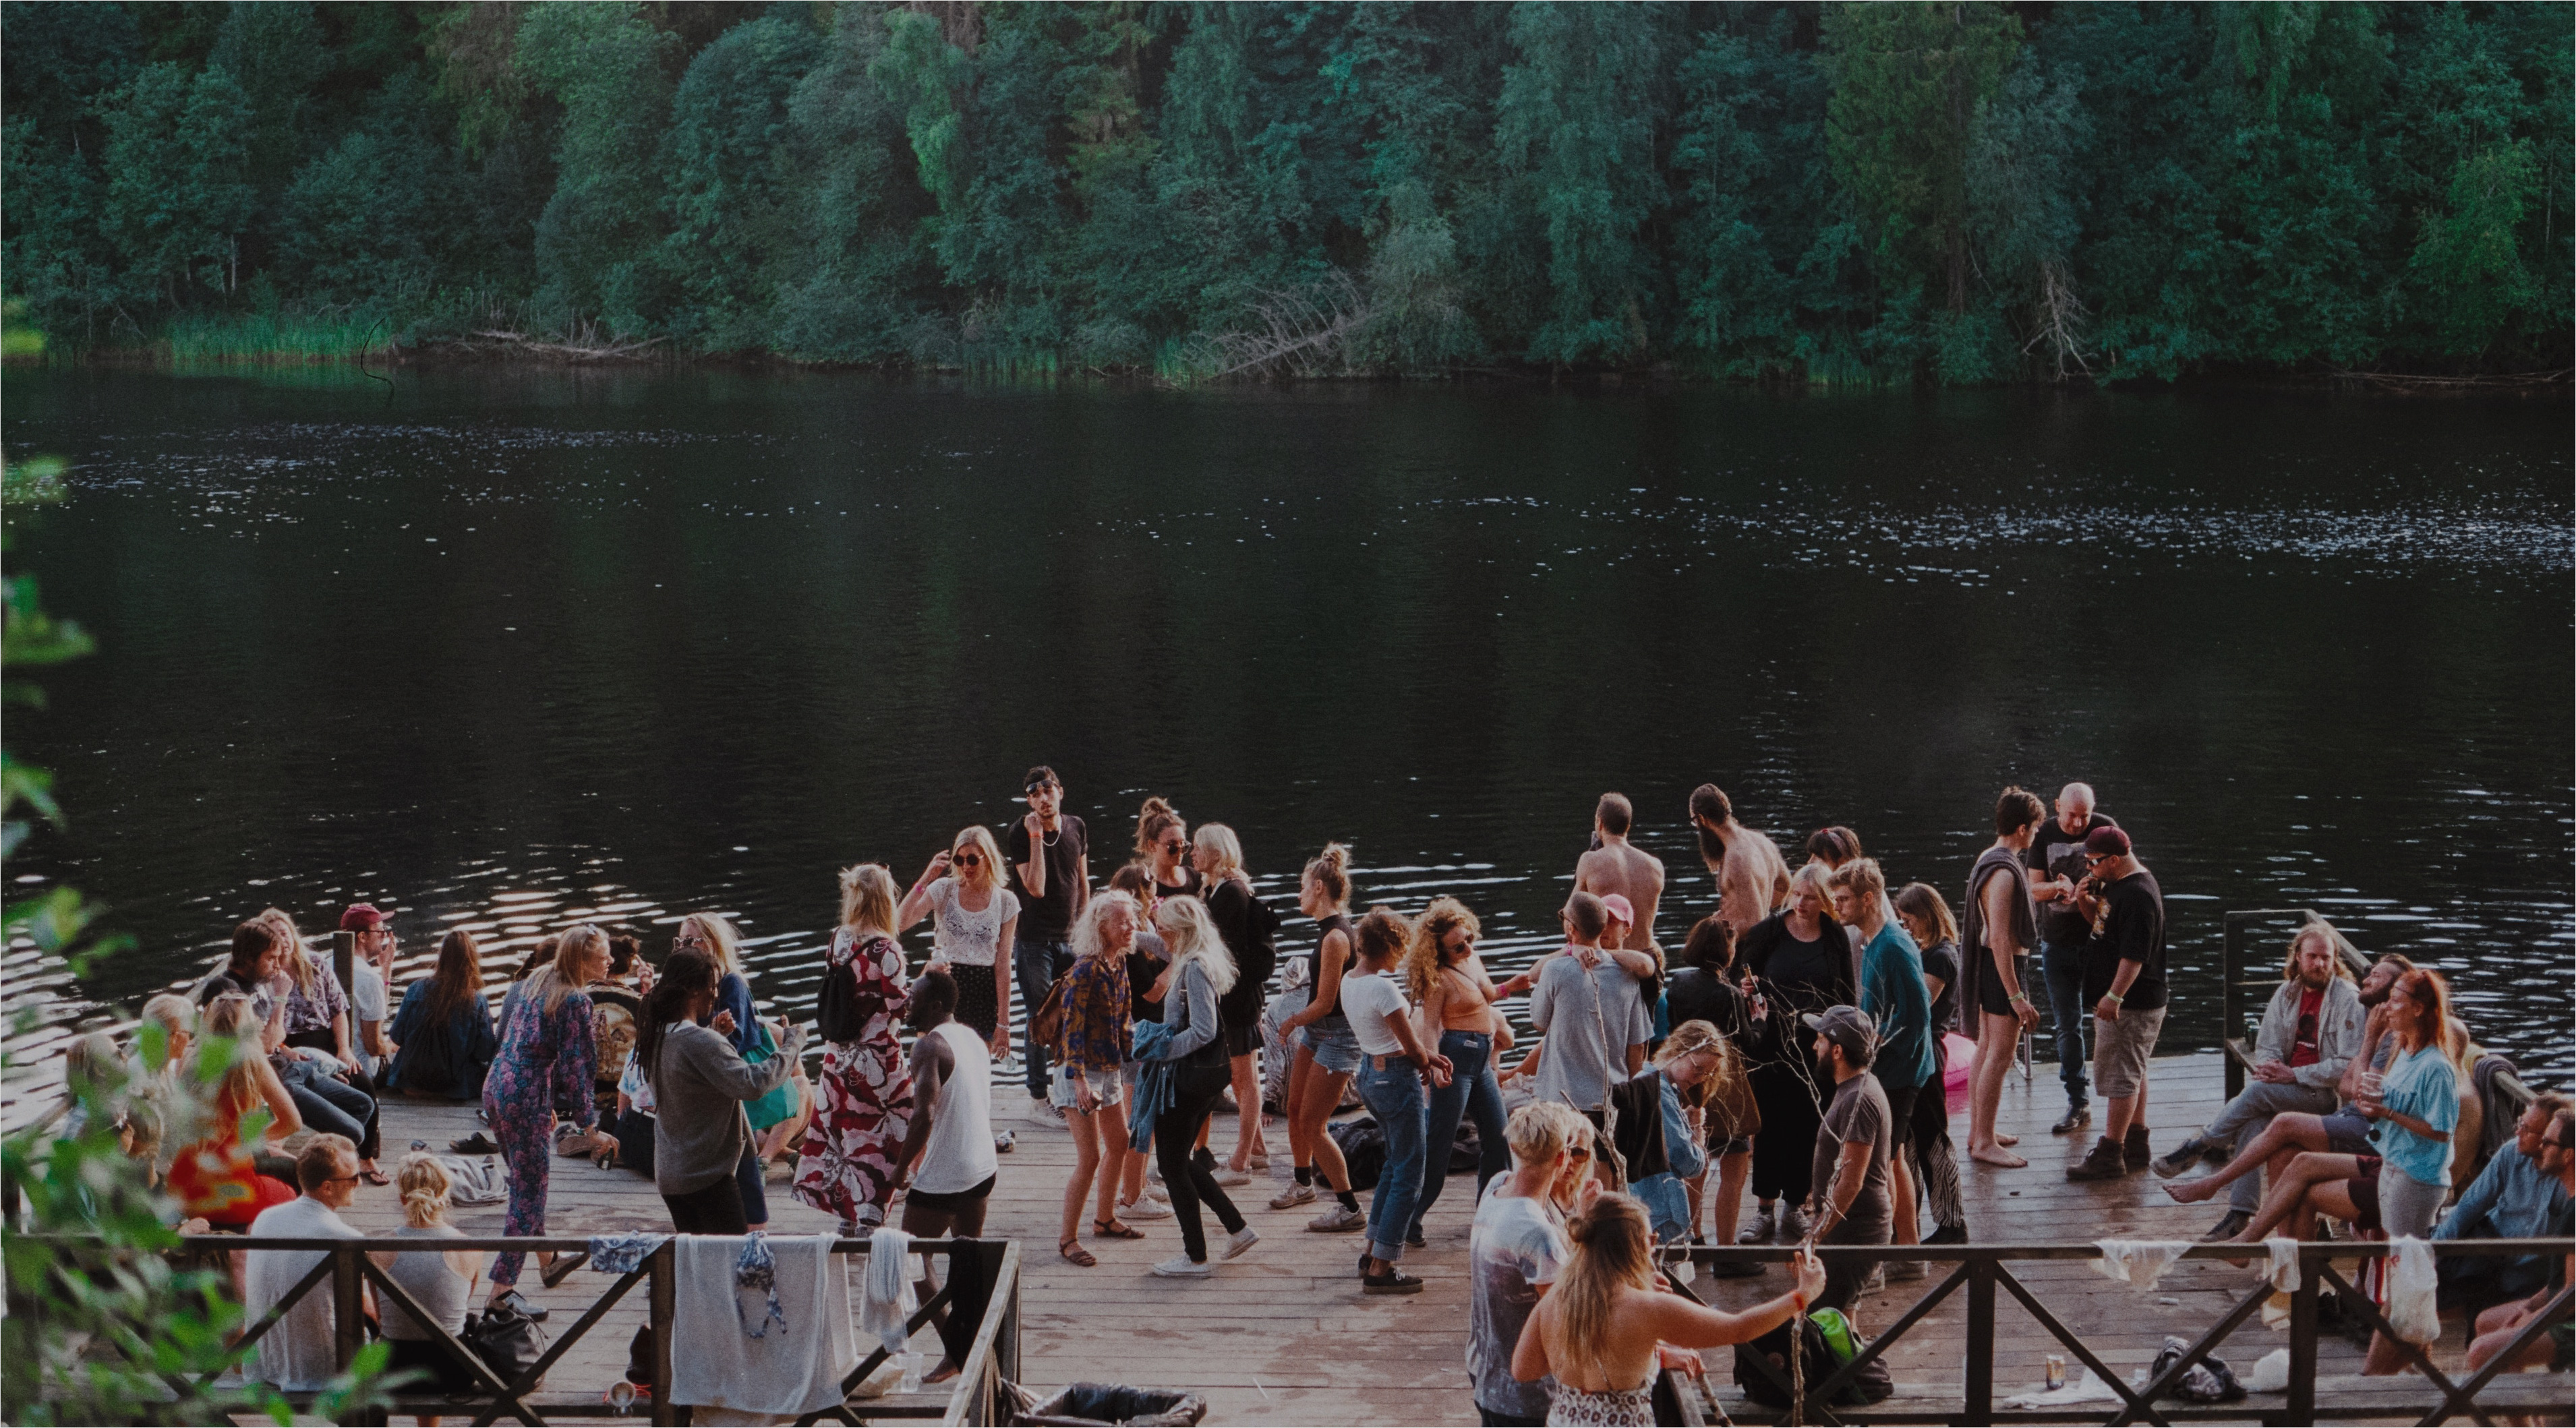 A group partying on a dock at the lake.